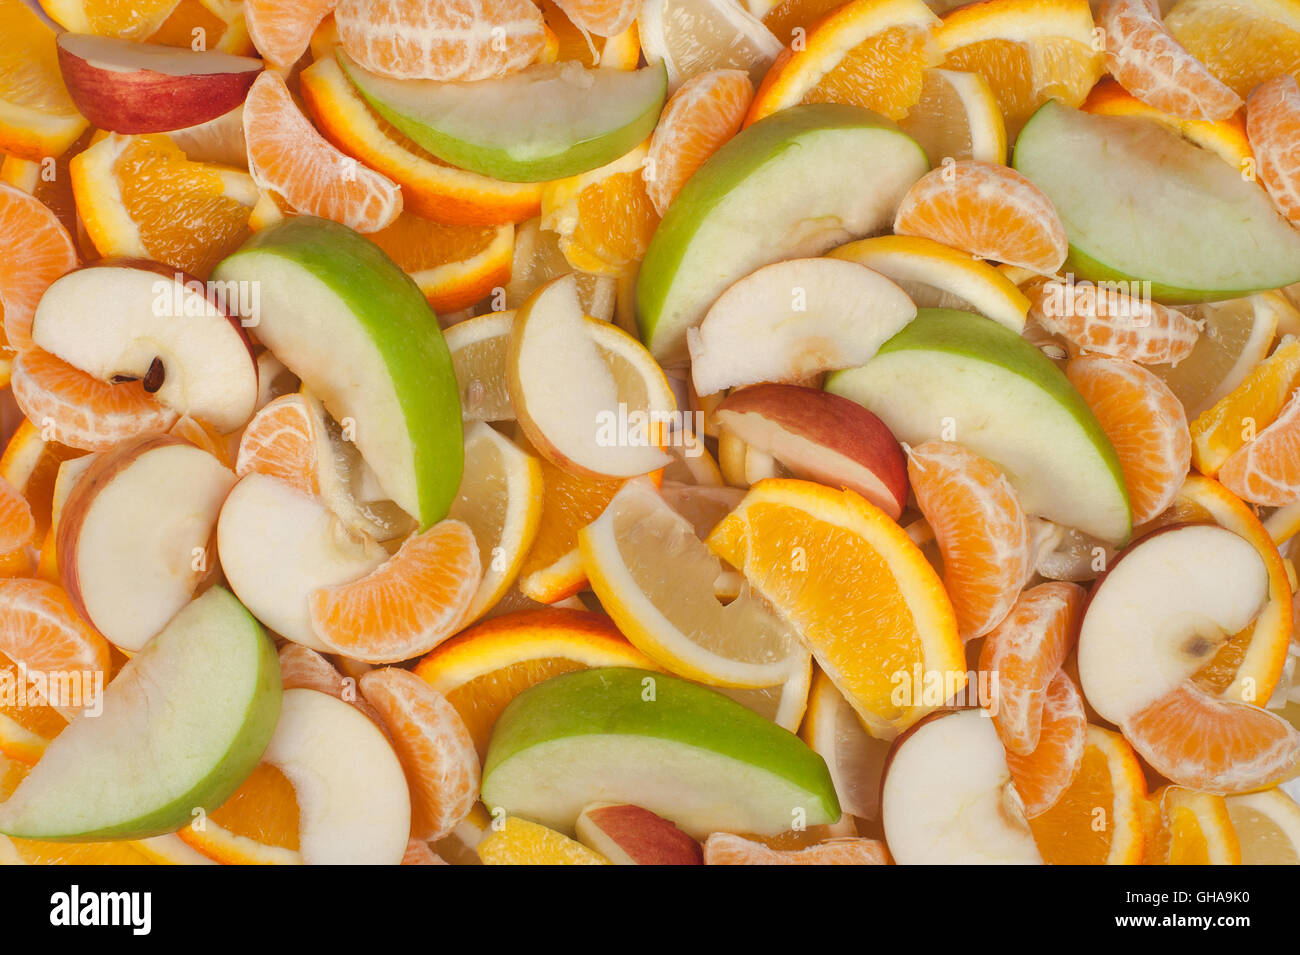 Origines de fruits - Citron Orange mandarine et Apple Photo Stock